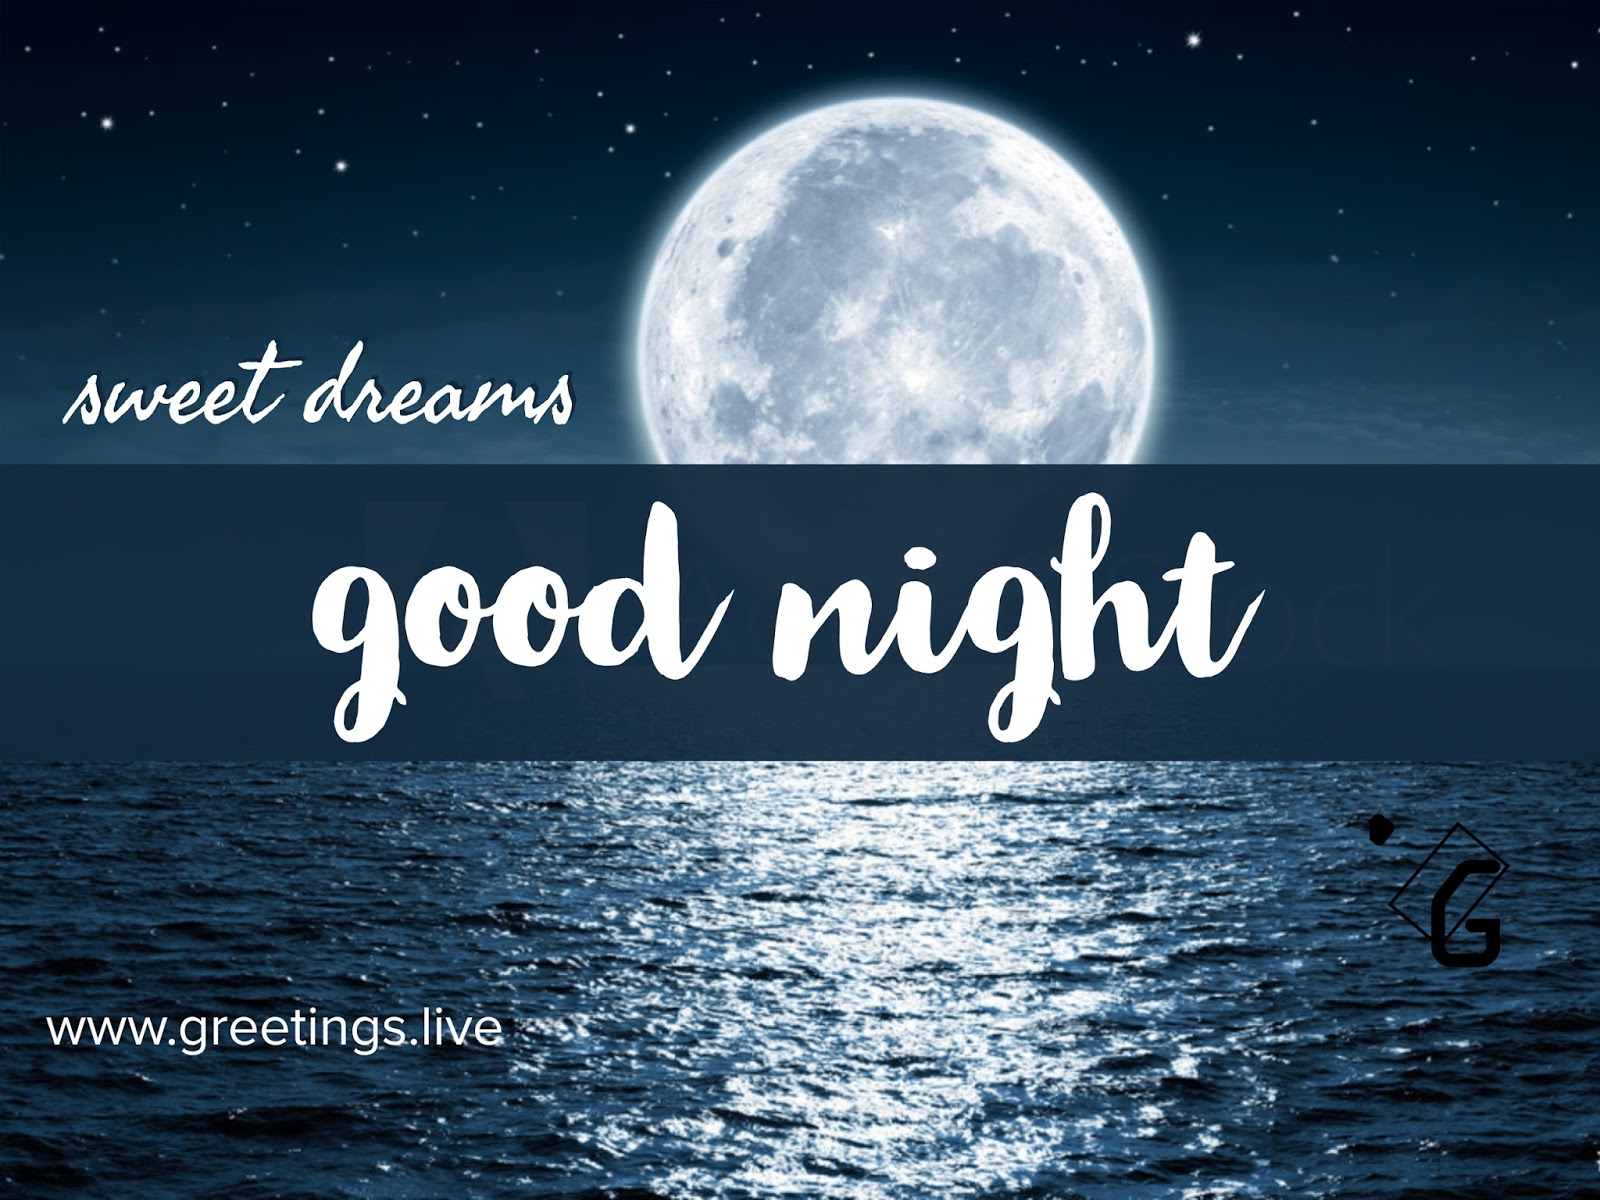 Greetings Live Free Daily Greetings Pictures Festival Gif Images Sweet Good Night Dream Messages Free Download